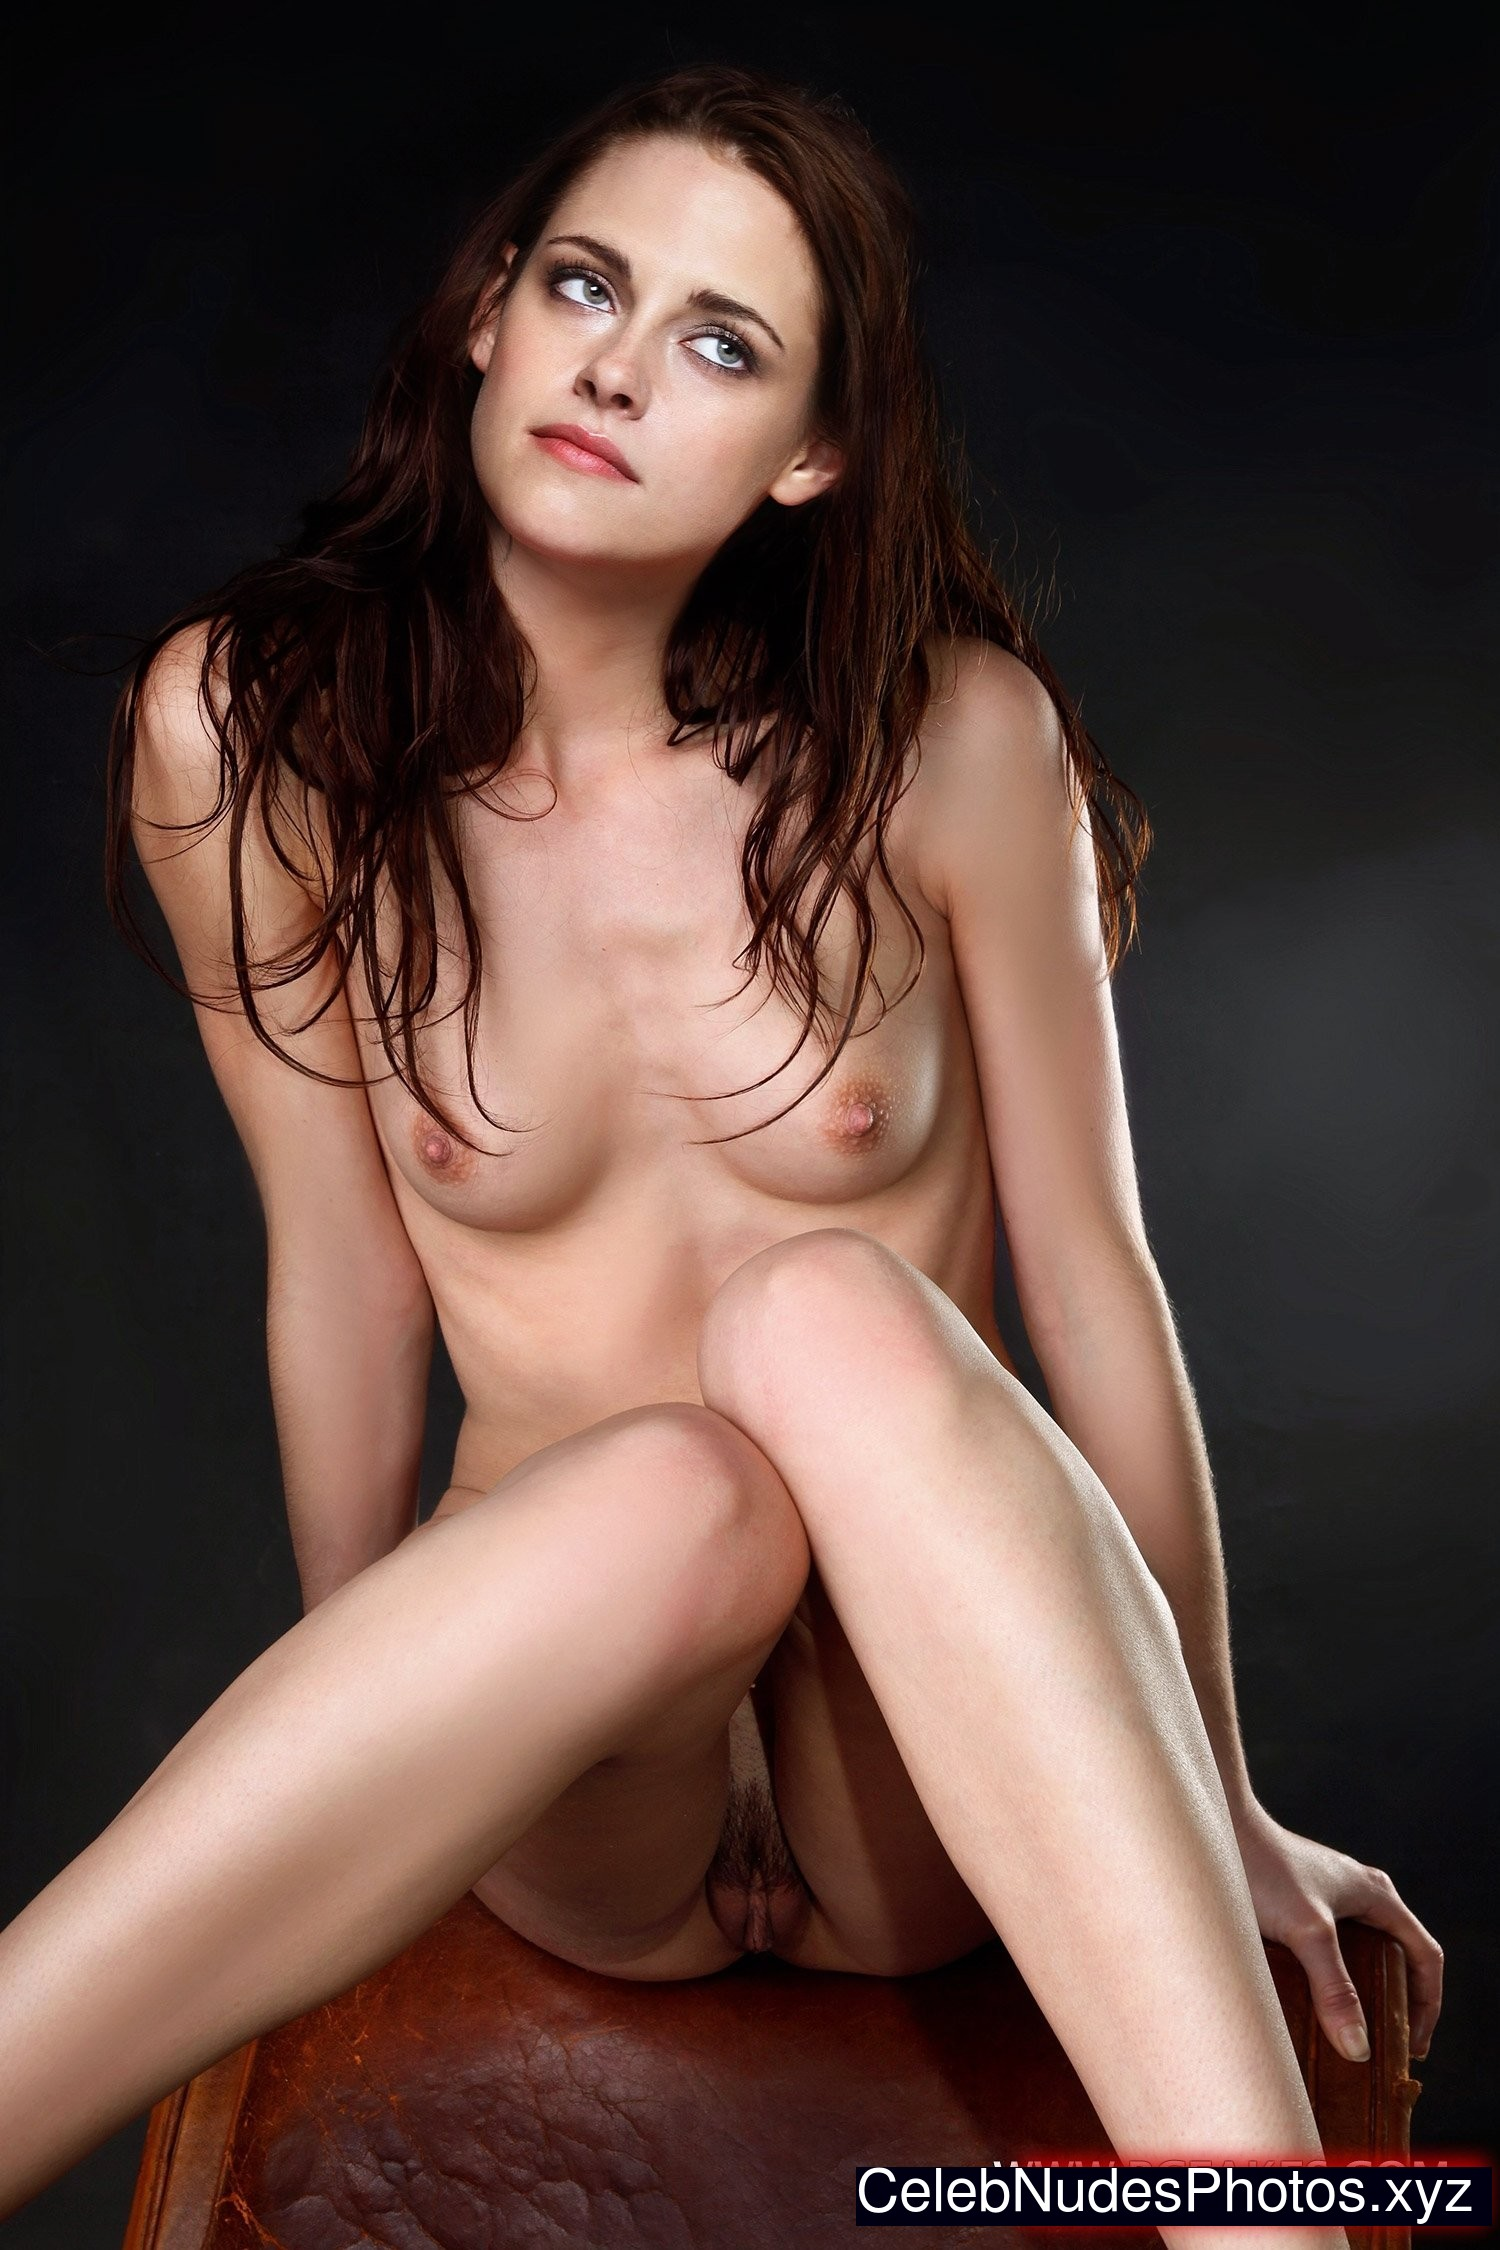 Naked Pictures Of Kristen Stewart